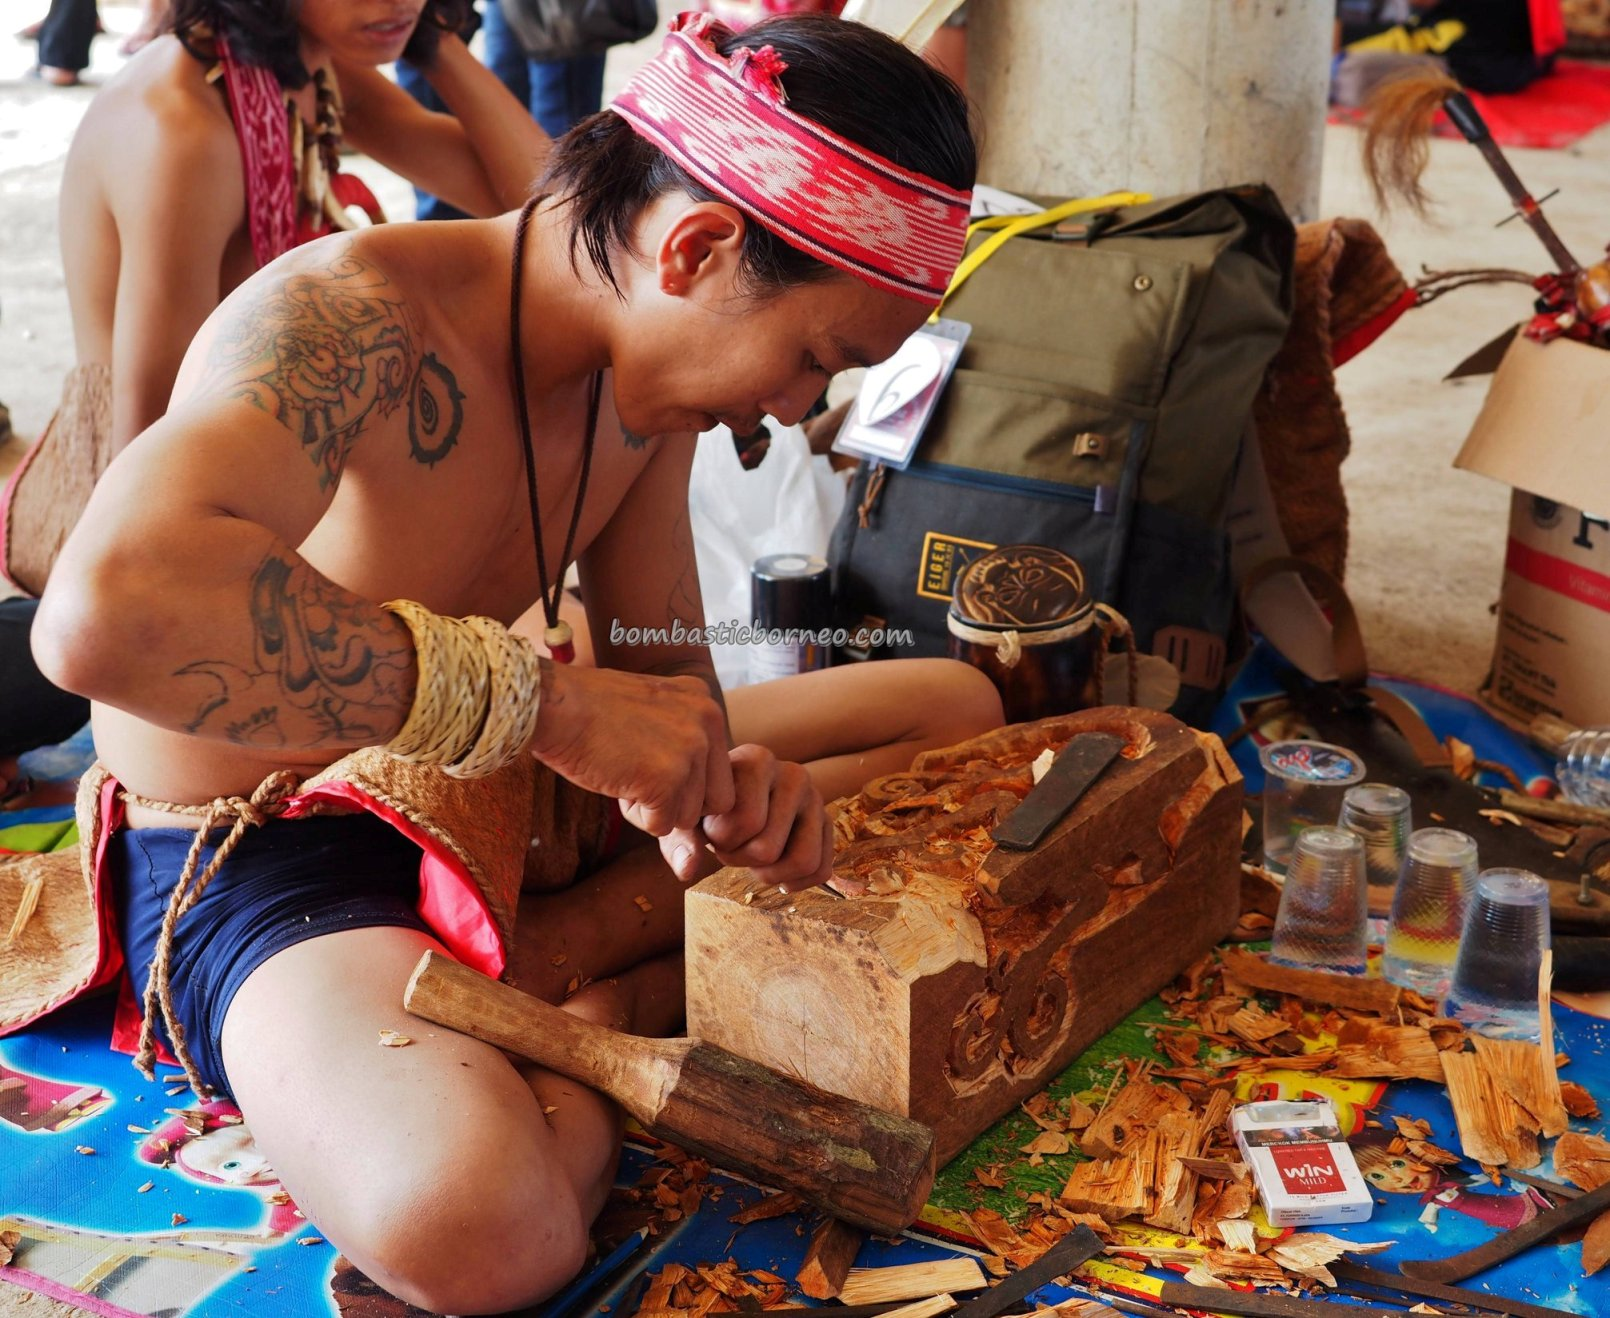 ukiran kayu, Sanggau, authentic, indigenous, backpackers, event, Indonesia, native, tribe, tribal, Tourism, tourist attraction, trans border, 婆罗洲印尼西加里曼丹, 上侯传统土著丰收节